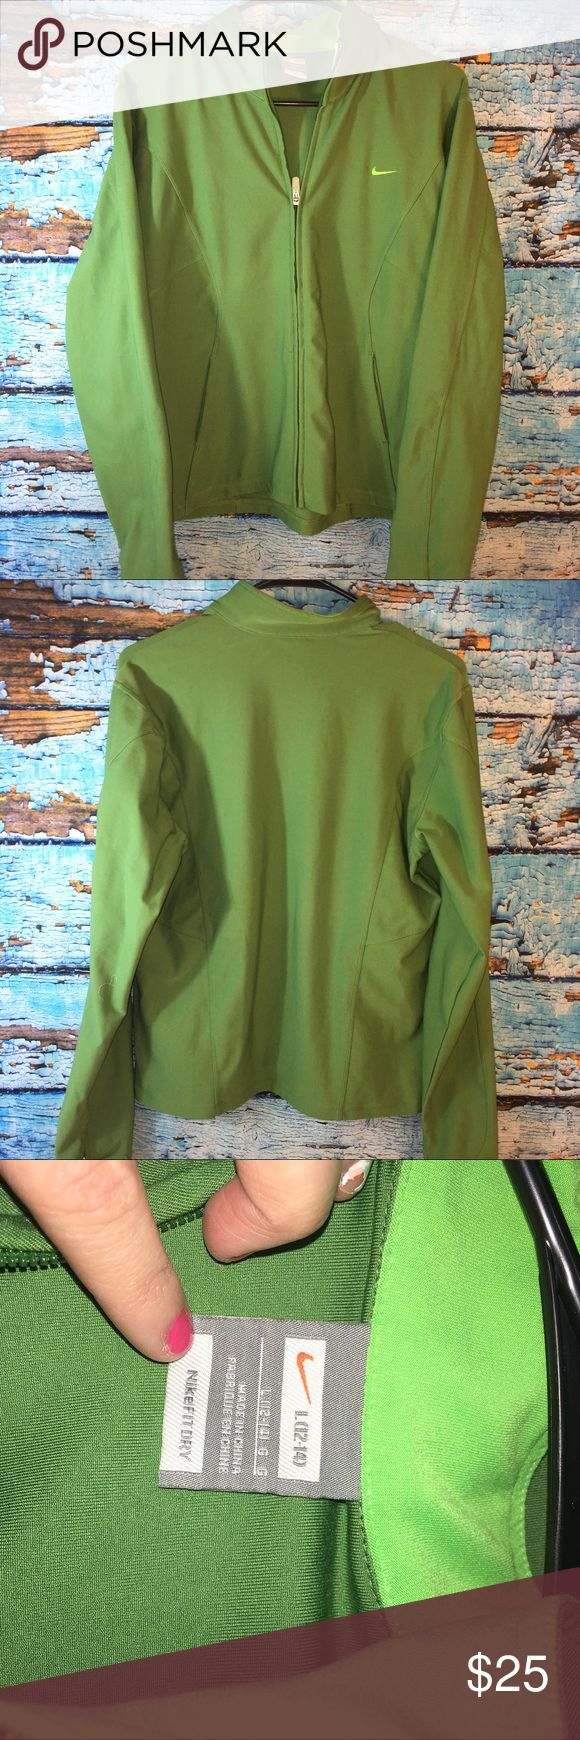 Nike fit dry large women's green Zip Up jacket Nike fit dry large women's green Zip Up jacket. Preowned in gently used condition with no visible signs of wear. Nike Jackets & Coats Utility Jackets